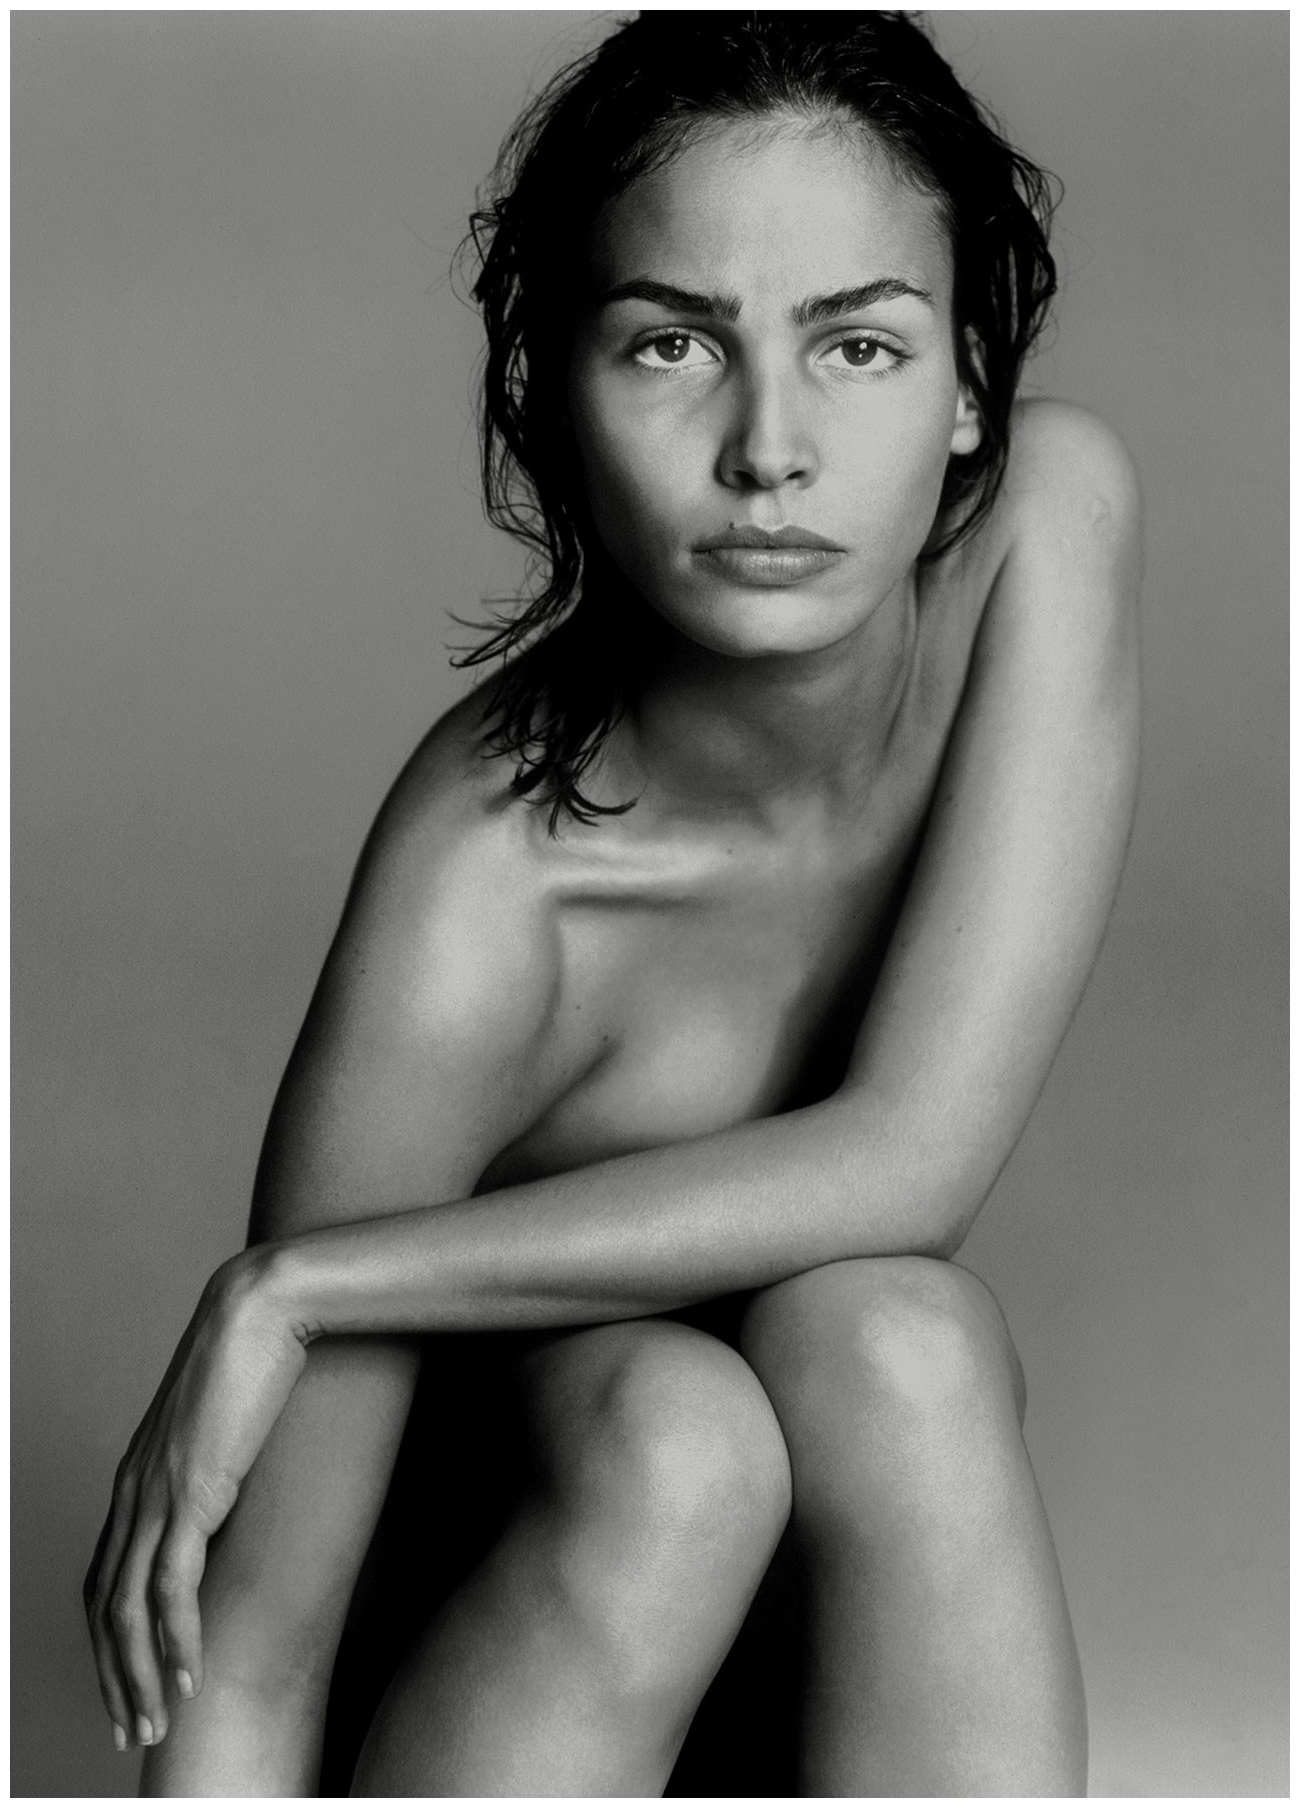 Ines Sastre for April 1997 Pirelli calendar